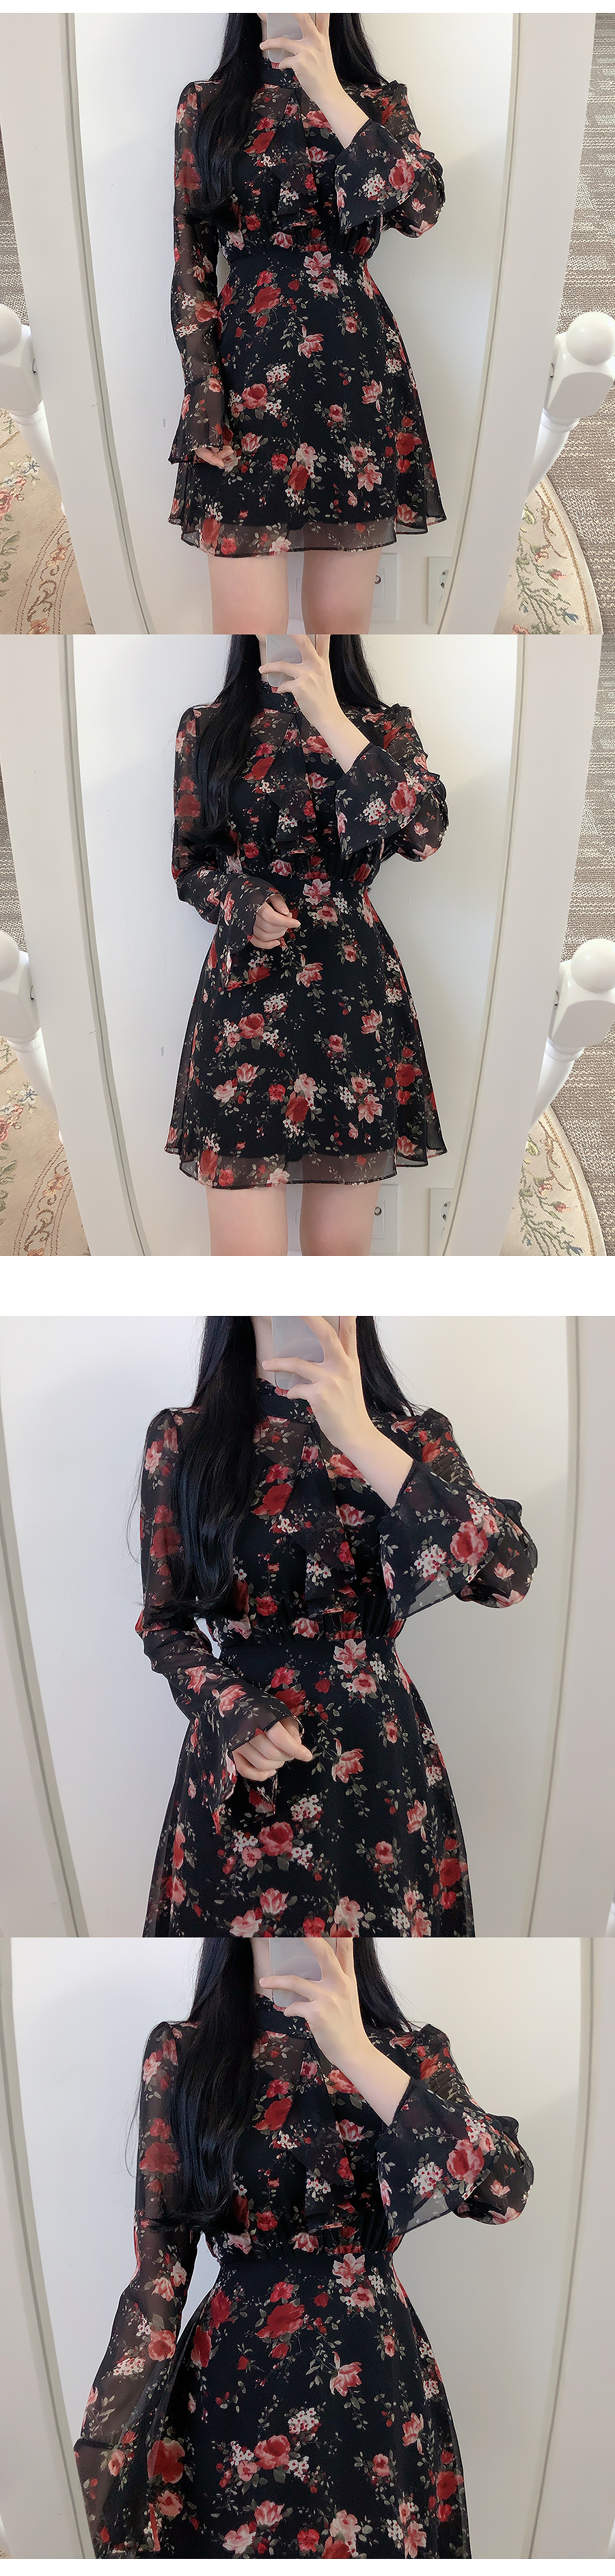 Carry Flower Dress